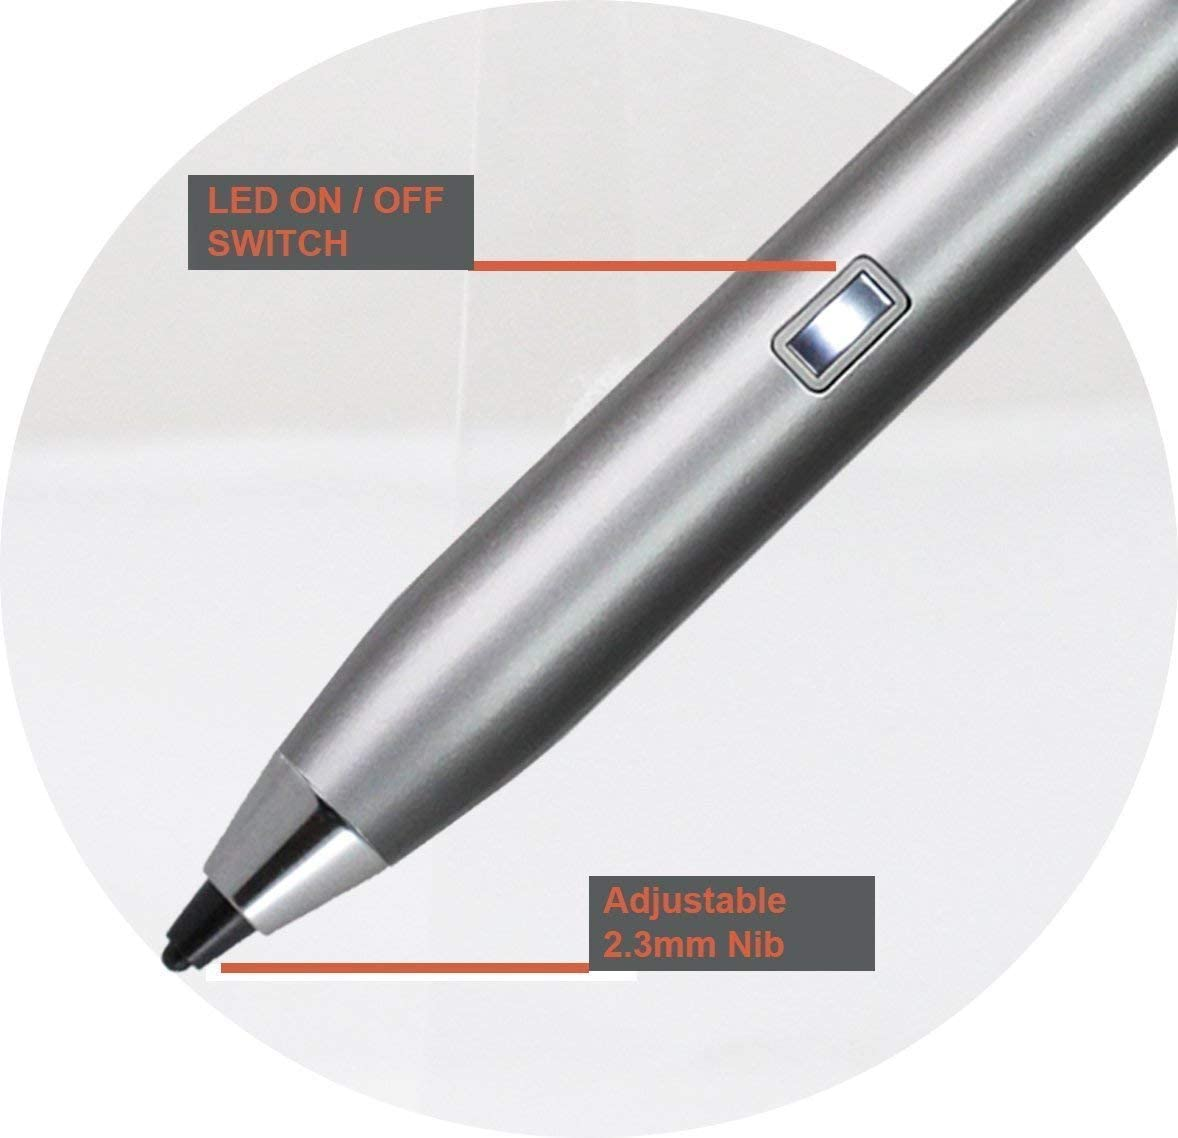 Acer Aspire 3 A315-22 15.6 Inch Laptop Broonel Silver Mini Fine Point Digital Active Stylus Pen Compatible with The Acer Aspire 3 A315-33-P4ED 15.6